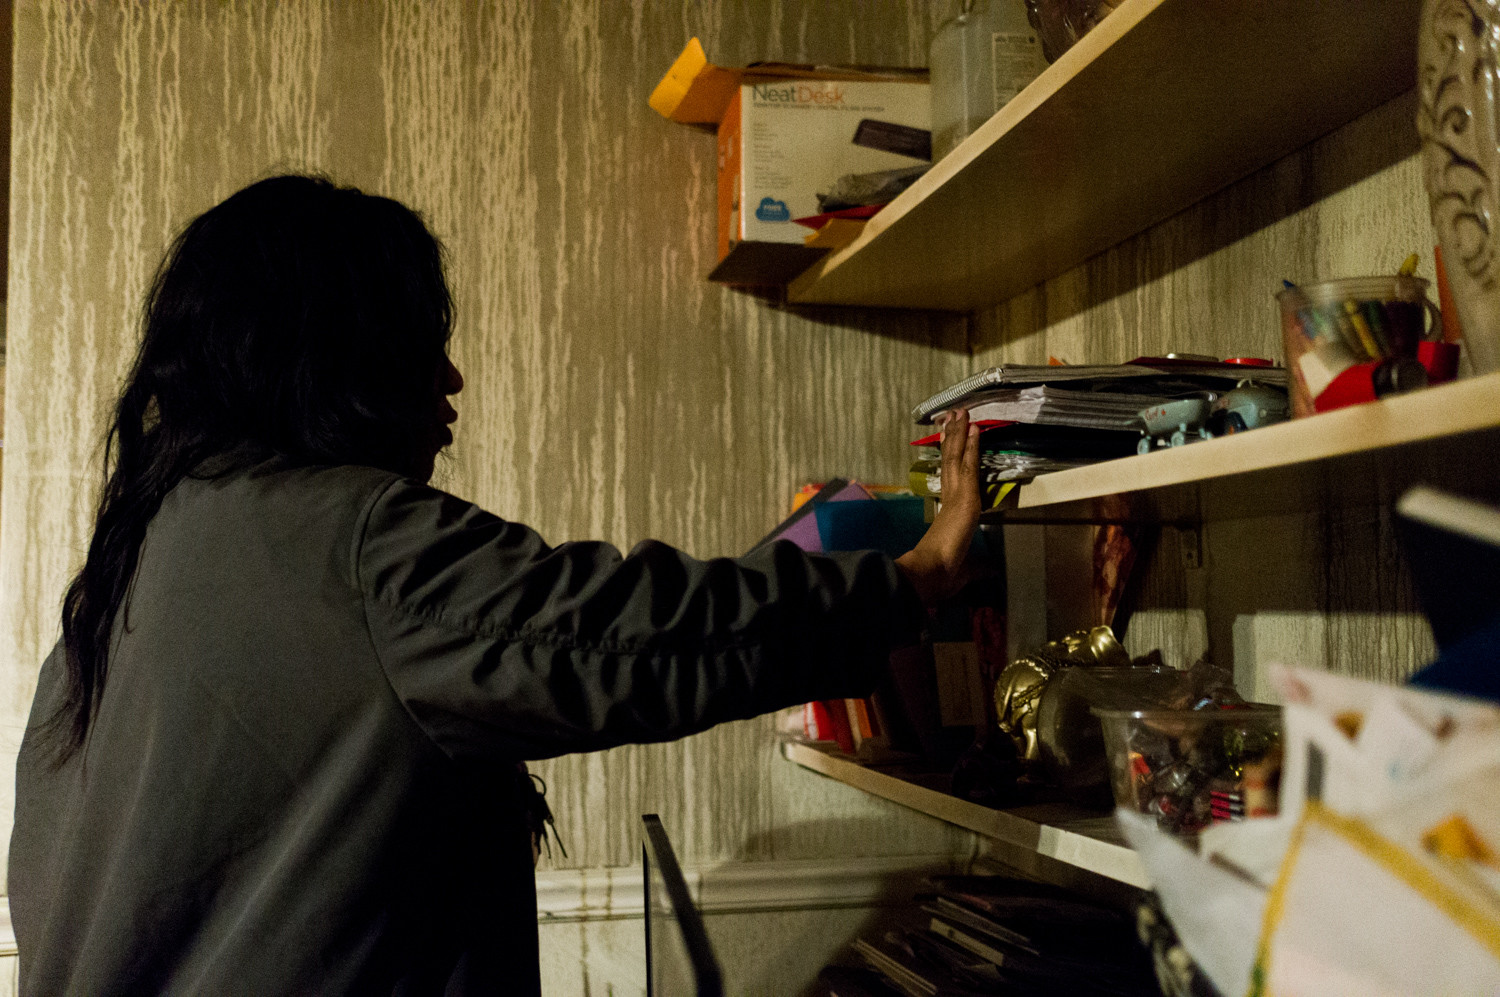 Ana Anderson looks through what was left behind in her 6035 Broadway apartment after a fire.